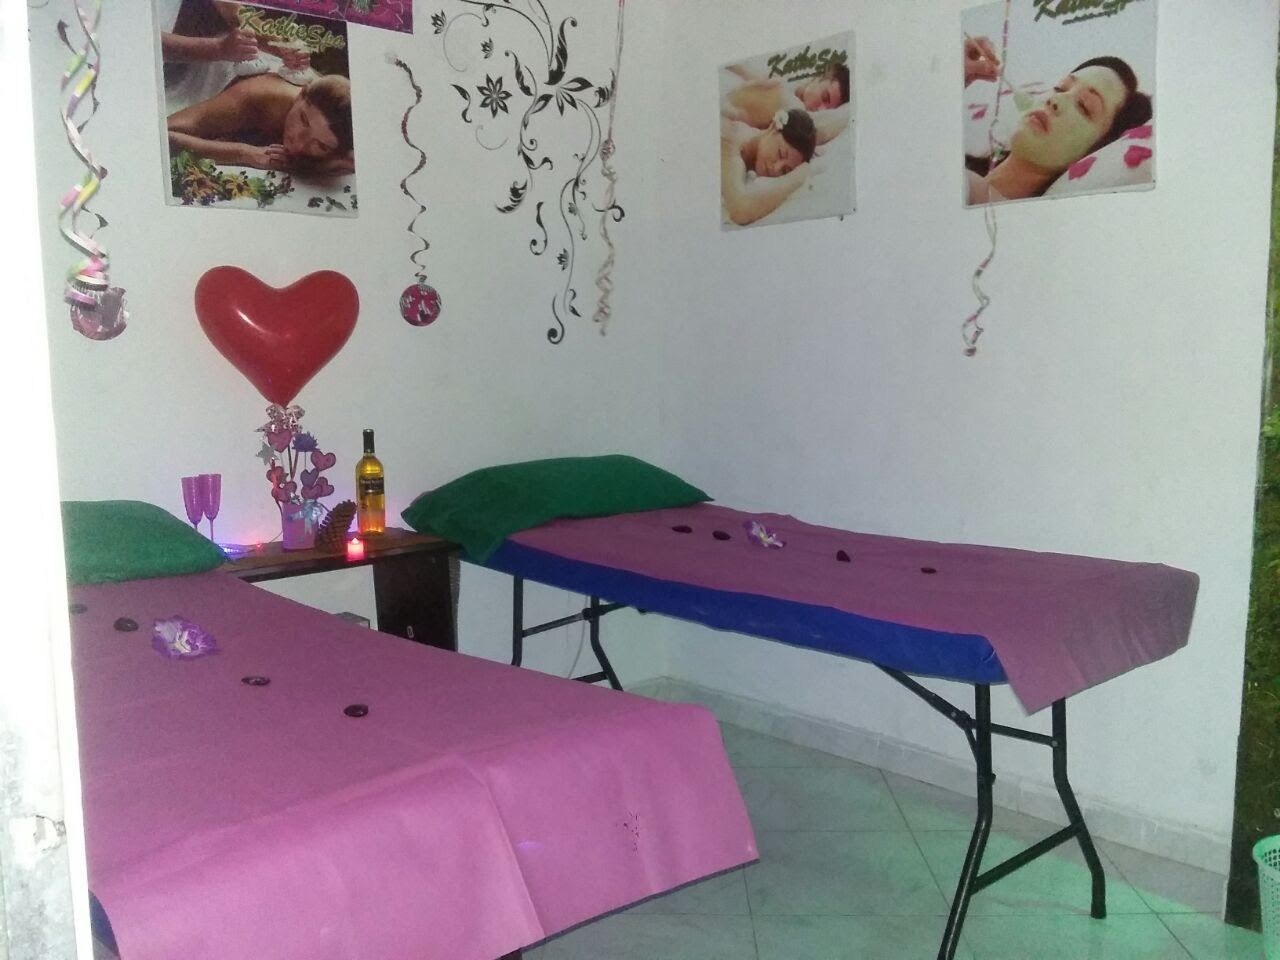 Kathe spa consiente tu cuerpo spa dia de la madre for Decoracion para spa